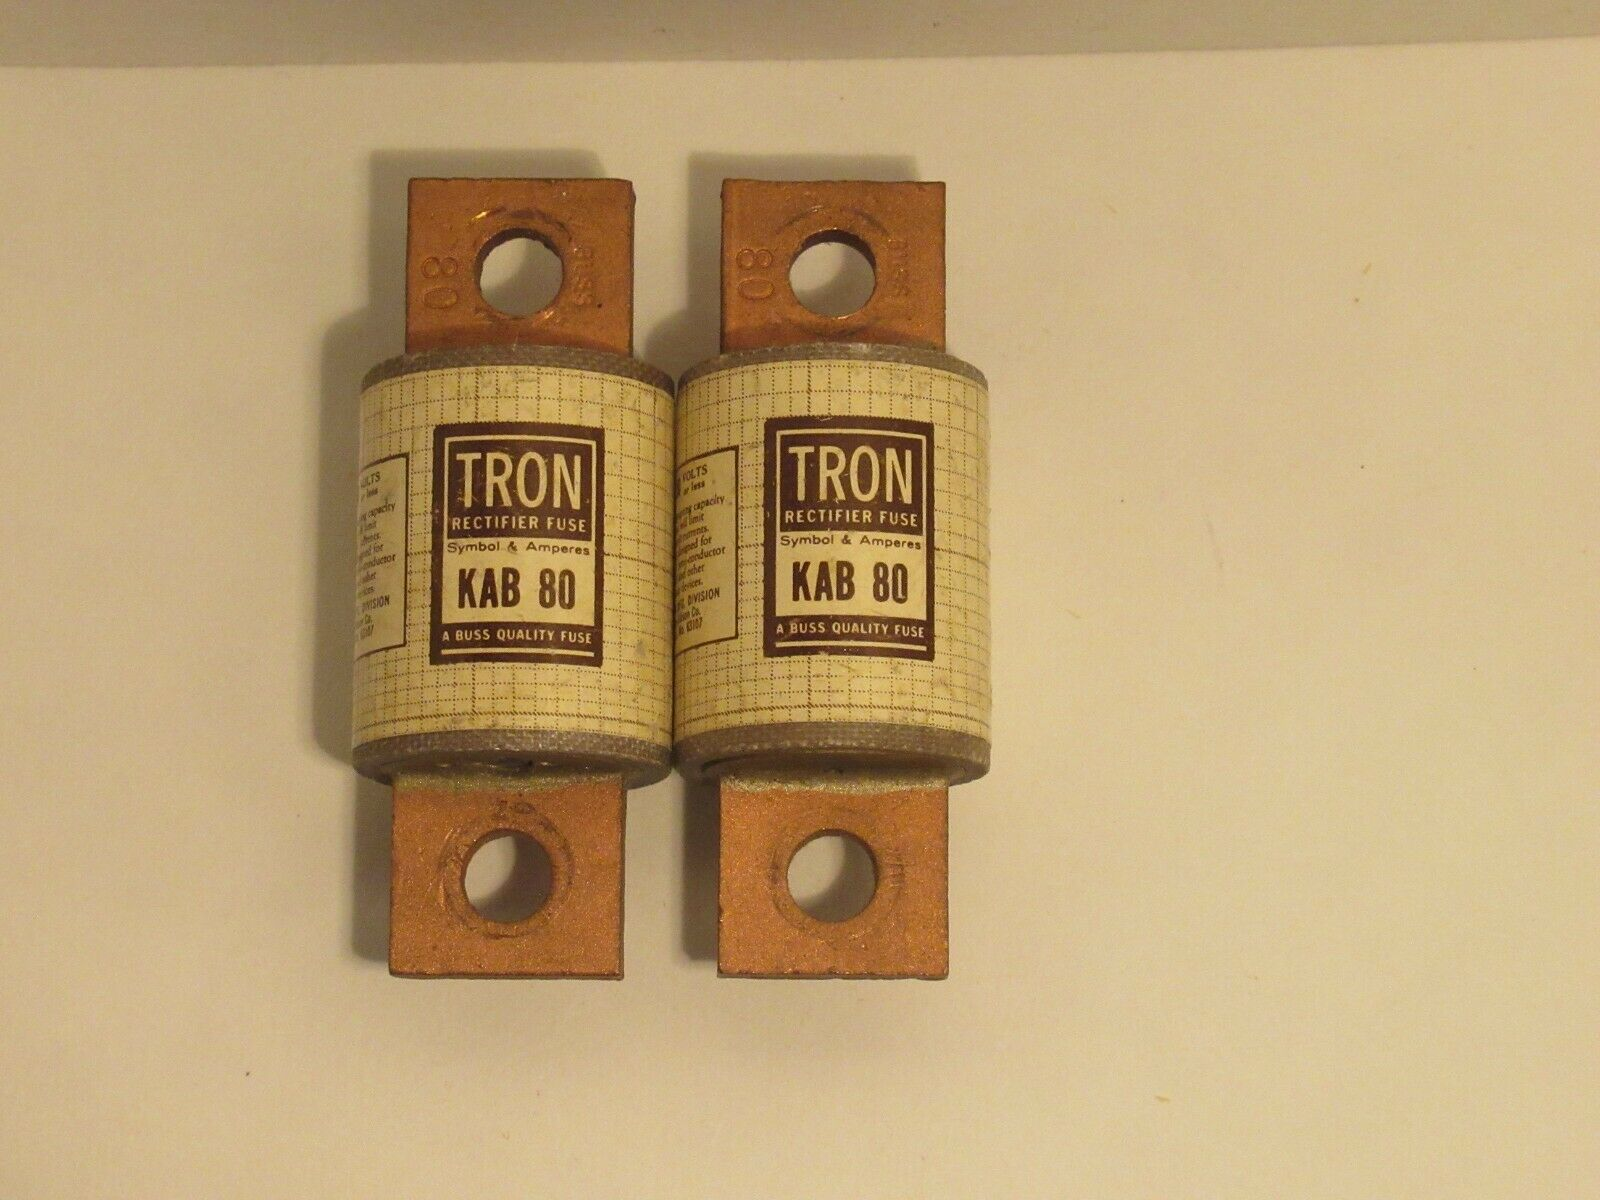 NEW BUSSMANN TRON KAB 80 RECTIFIER FUSE KAB80 KAB-80 80 AMPS 250 VOLTS LOT OF 2